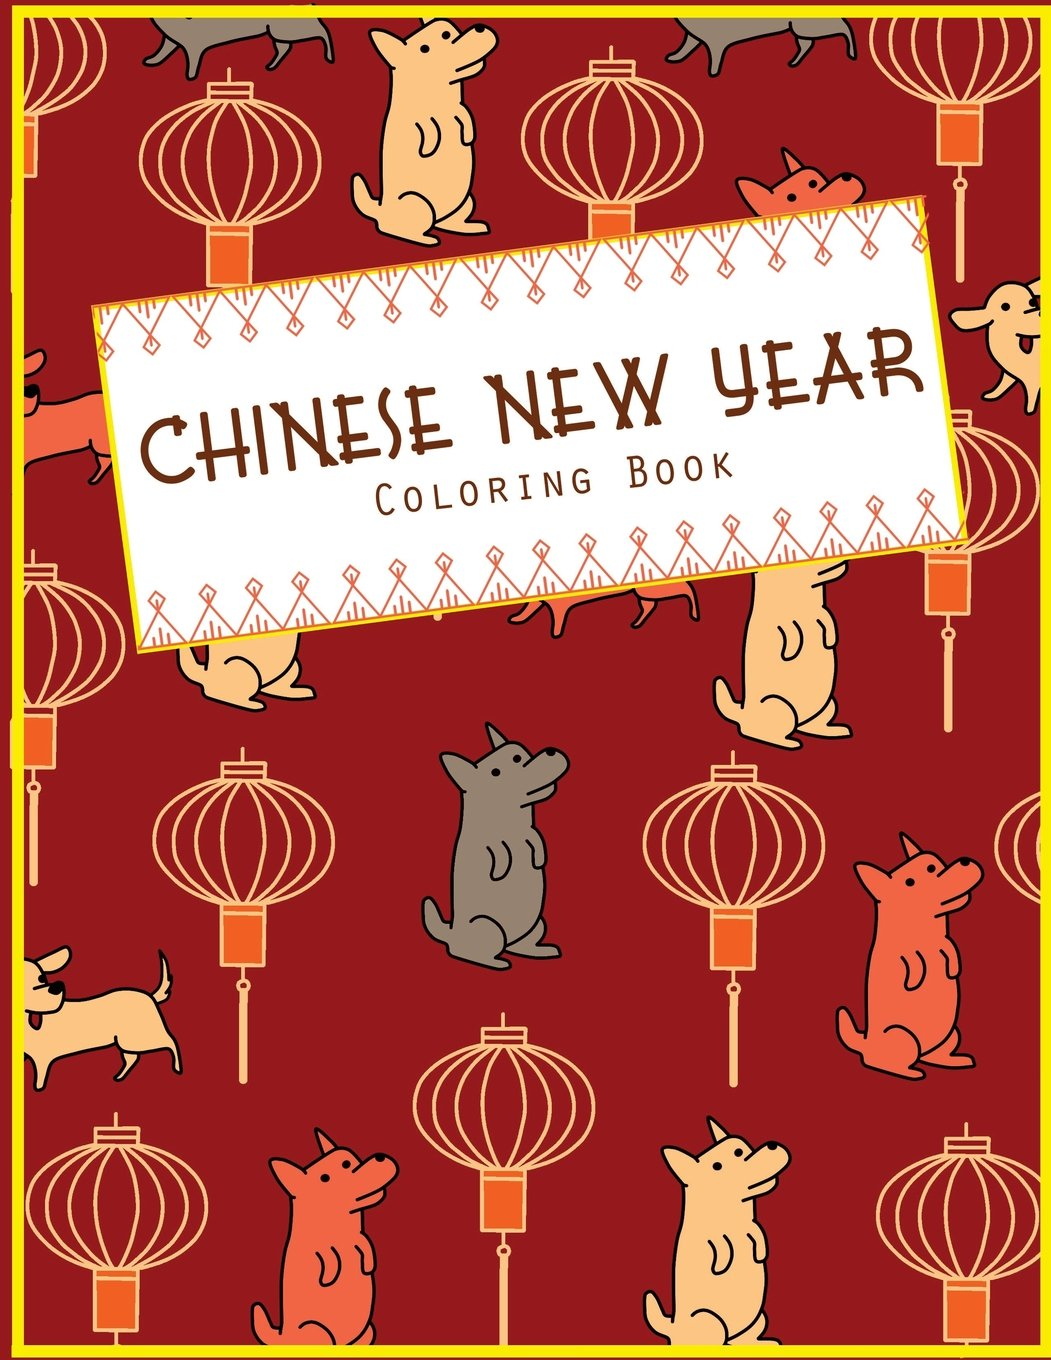 Amazon Com Chinese New Year Coloring Book Fun Holiday Craft